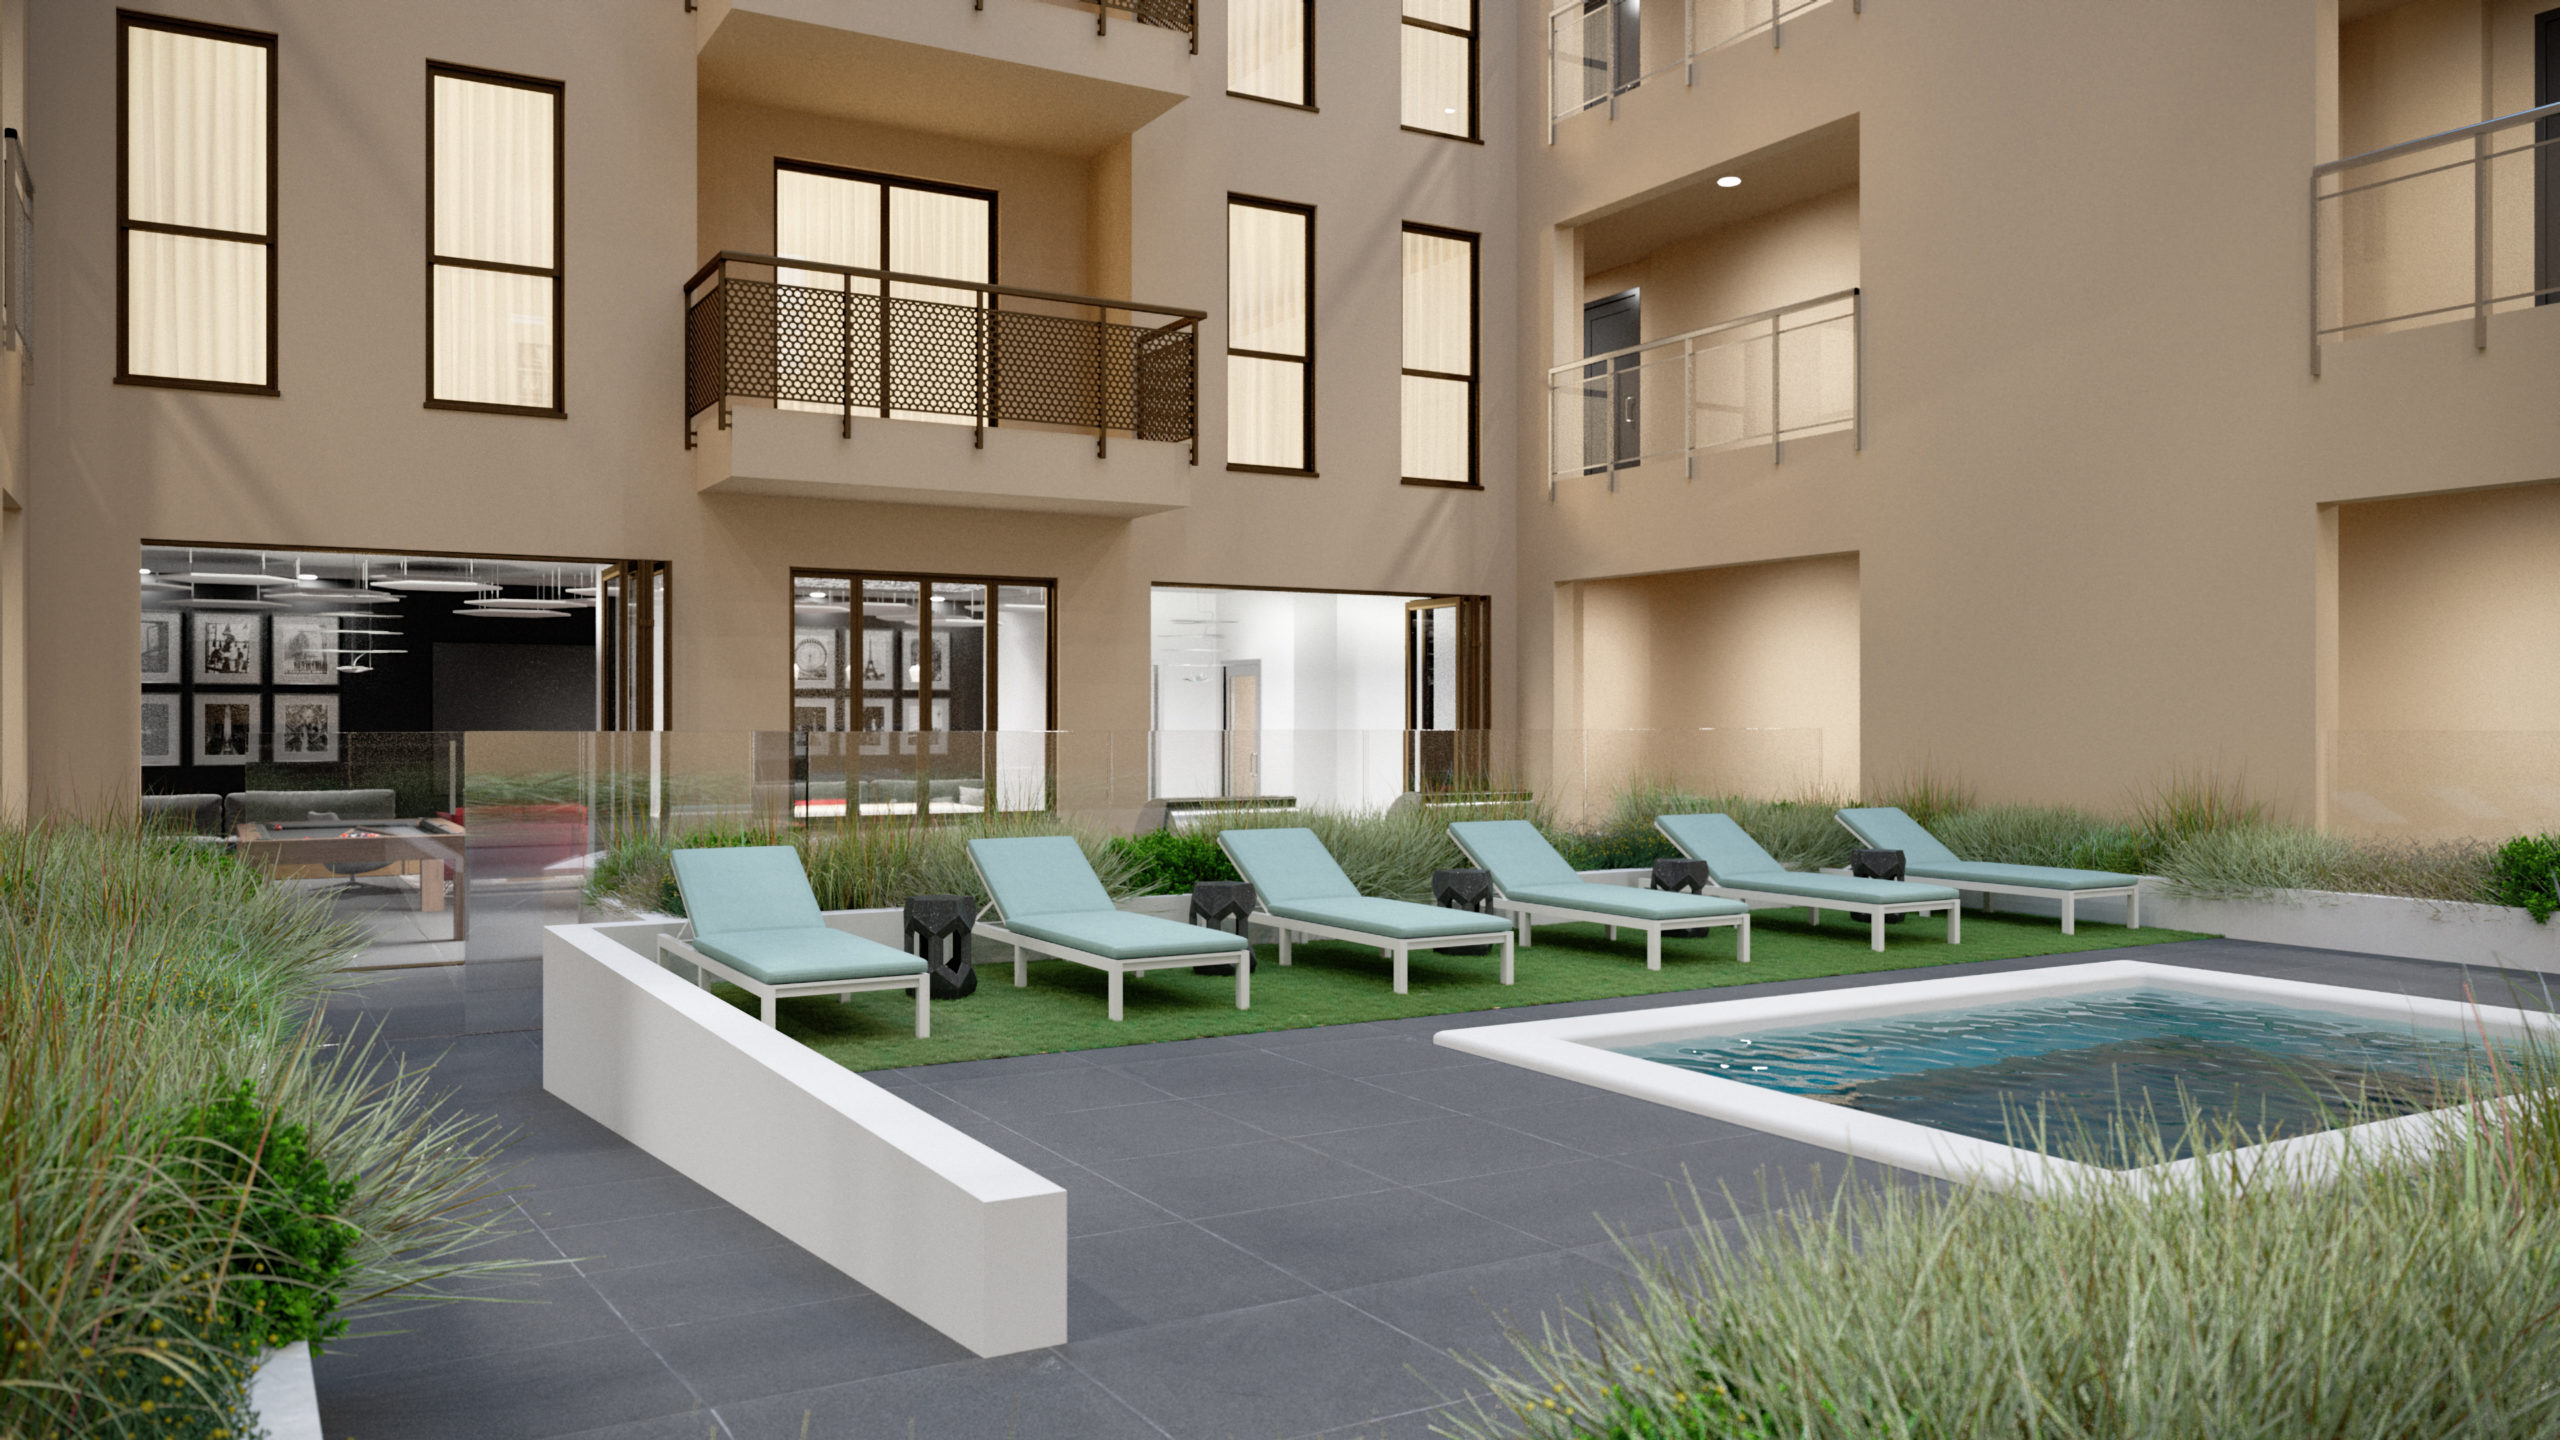 outdoor deck area with spa, gardens, balconies, and sun bathing beds